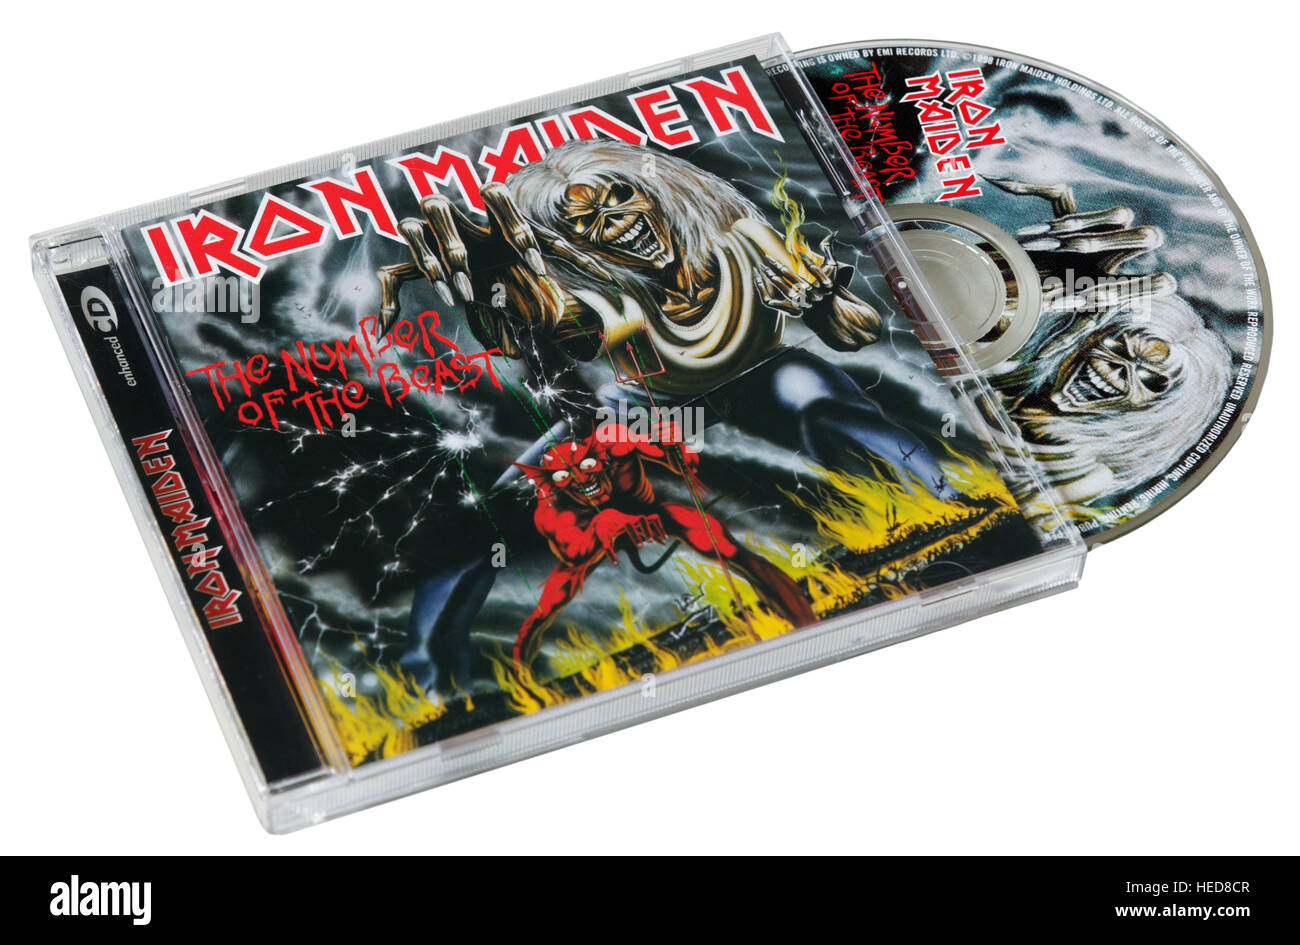 Iron Maiden The Number of the Beast CD - Stock Image